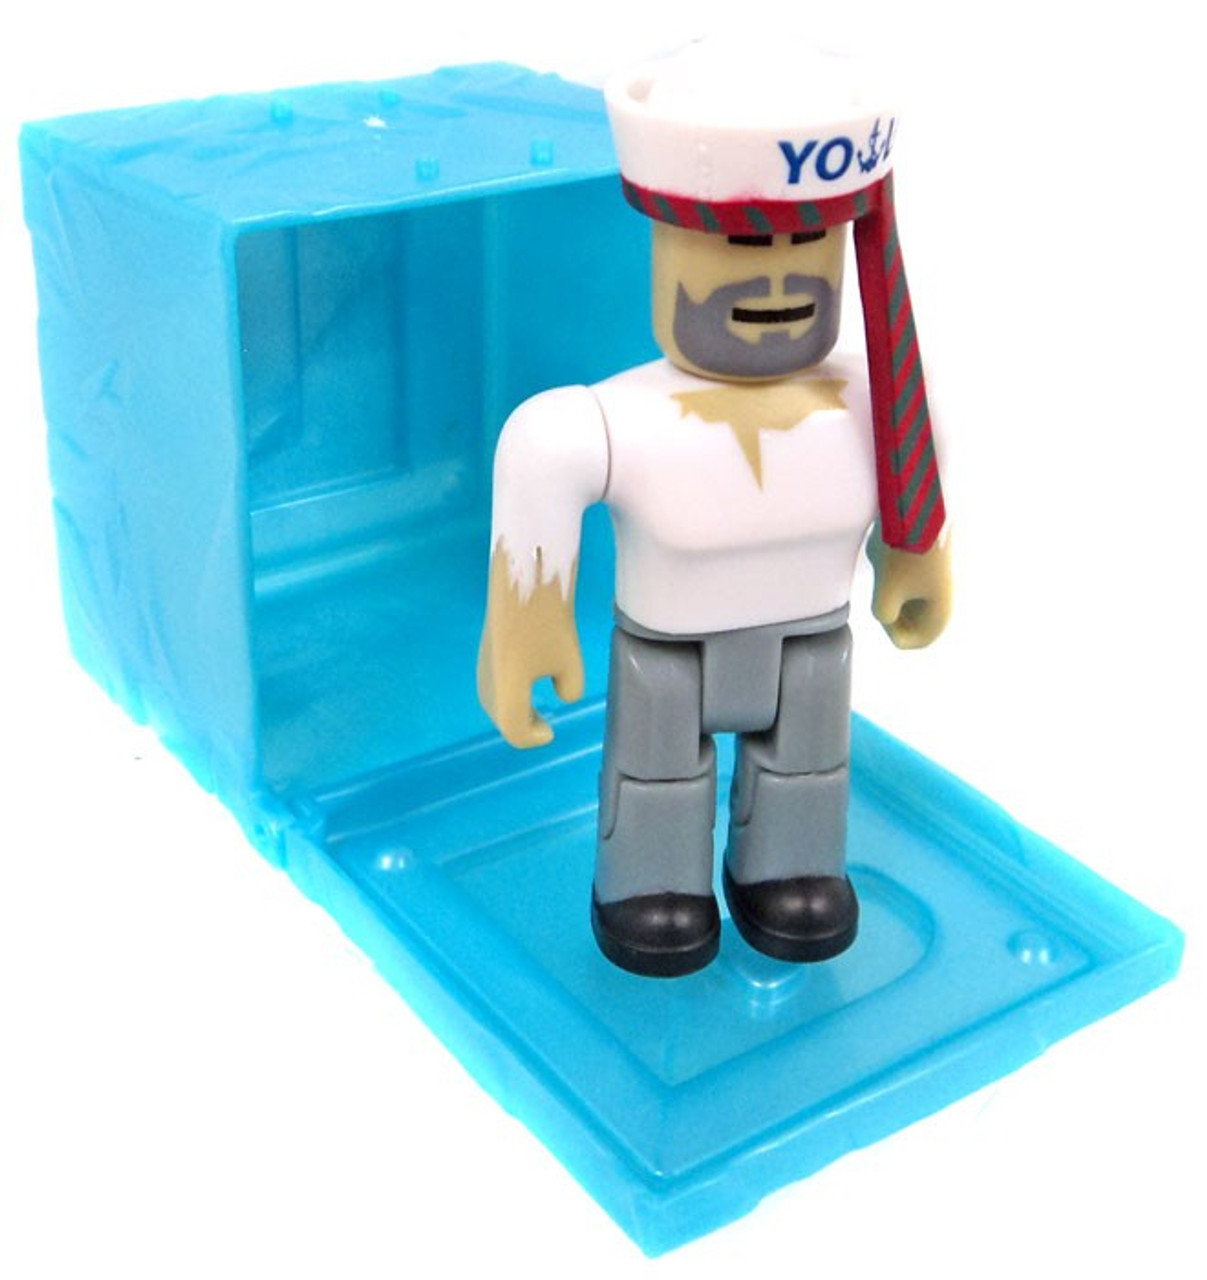 Roblox Series 3 Patient Zero Mini Figure Without Code No Packaging - Roblox Red Series 3 Captain Hoover Mini Figure Blue Cube With Online Code Loose